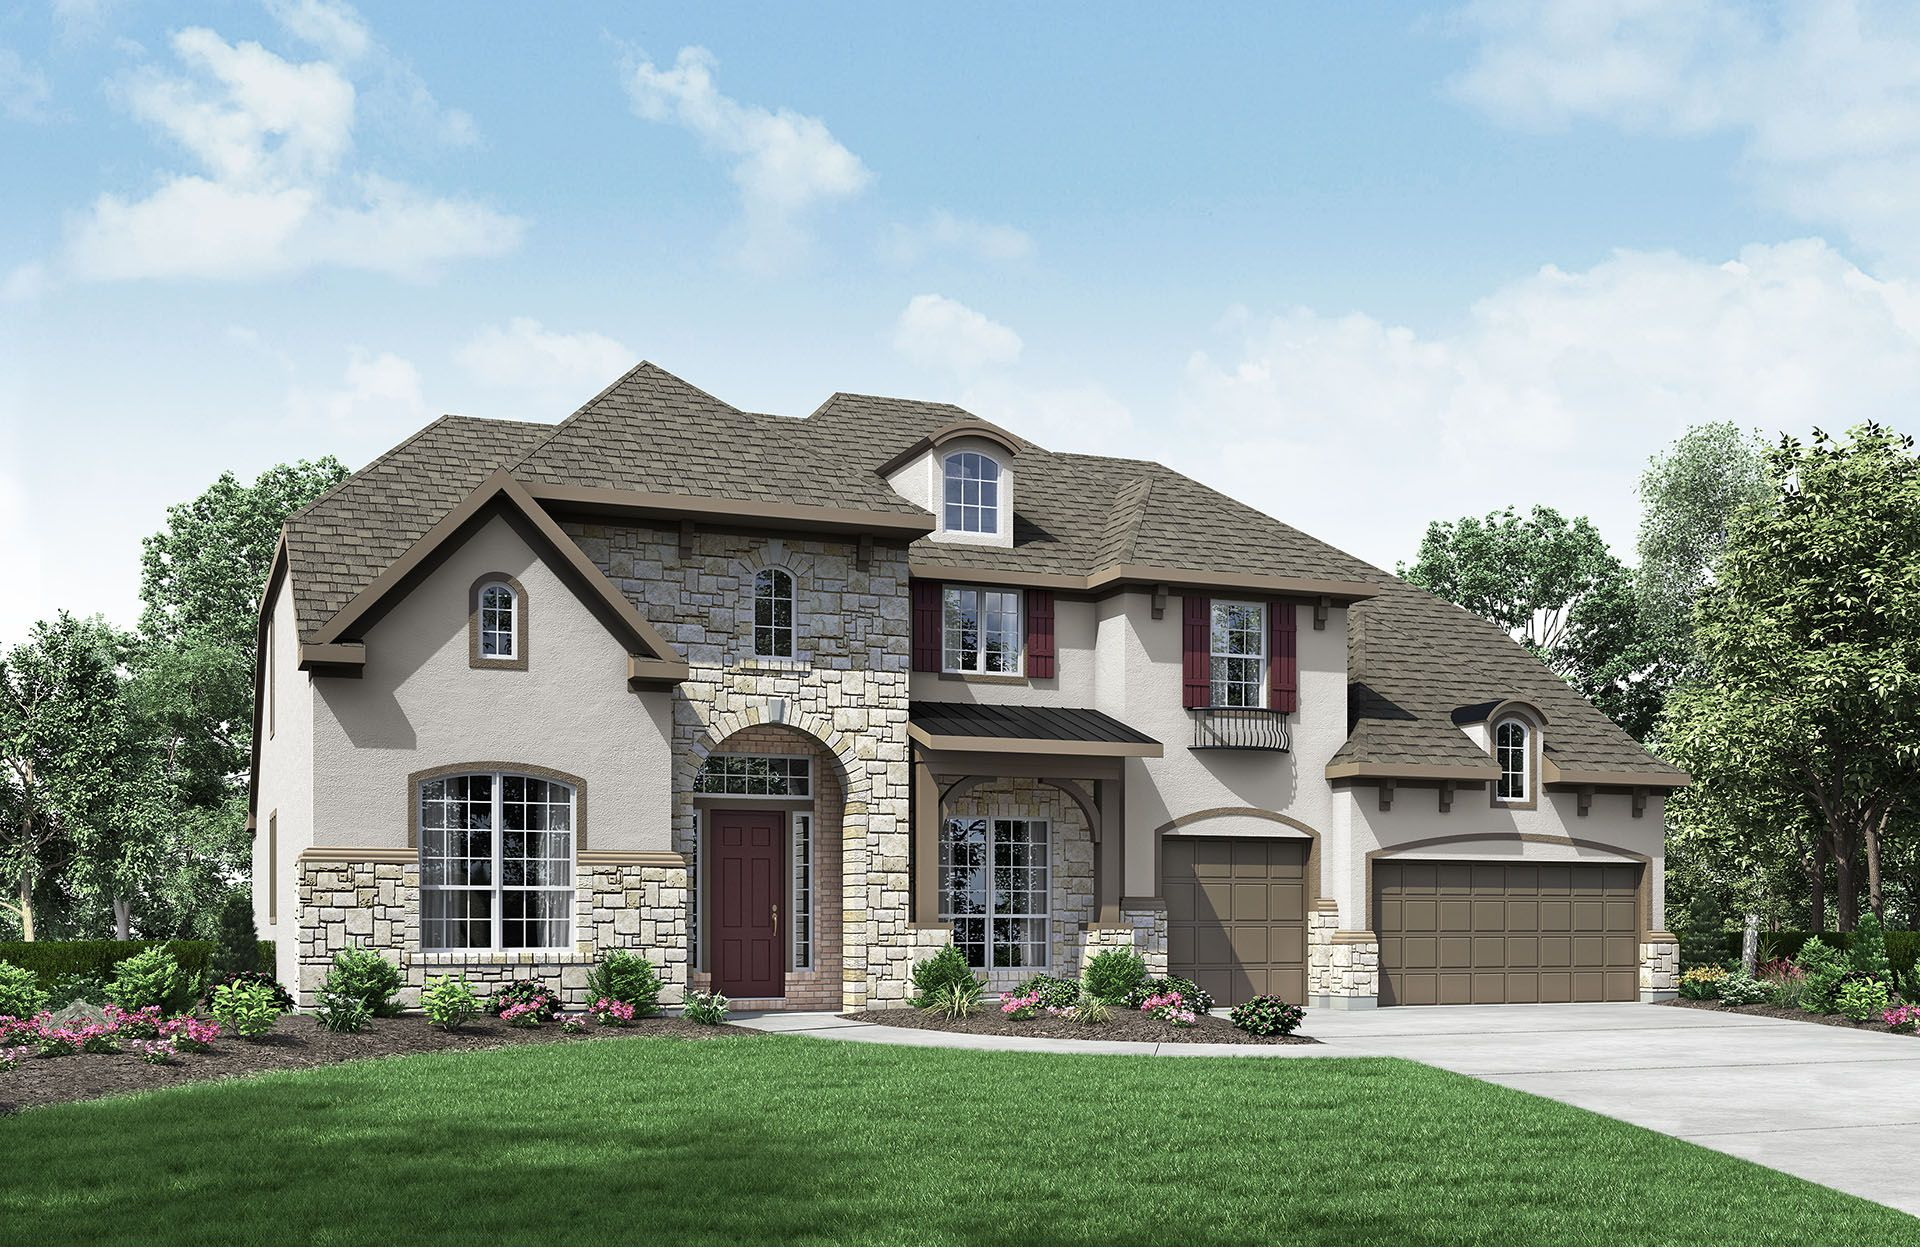 Single Family for Sale at Sweetwater - Driscoll 131 Waters View Court Dripping Springs, Texas 78620 United States